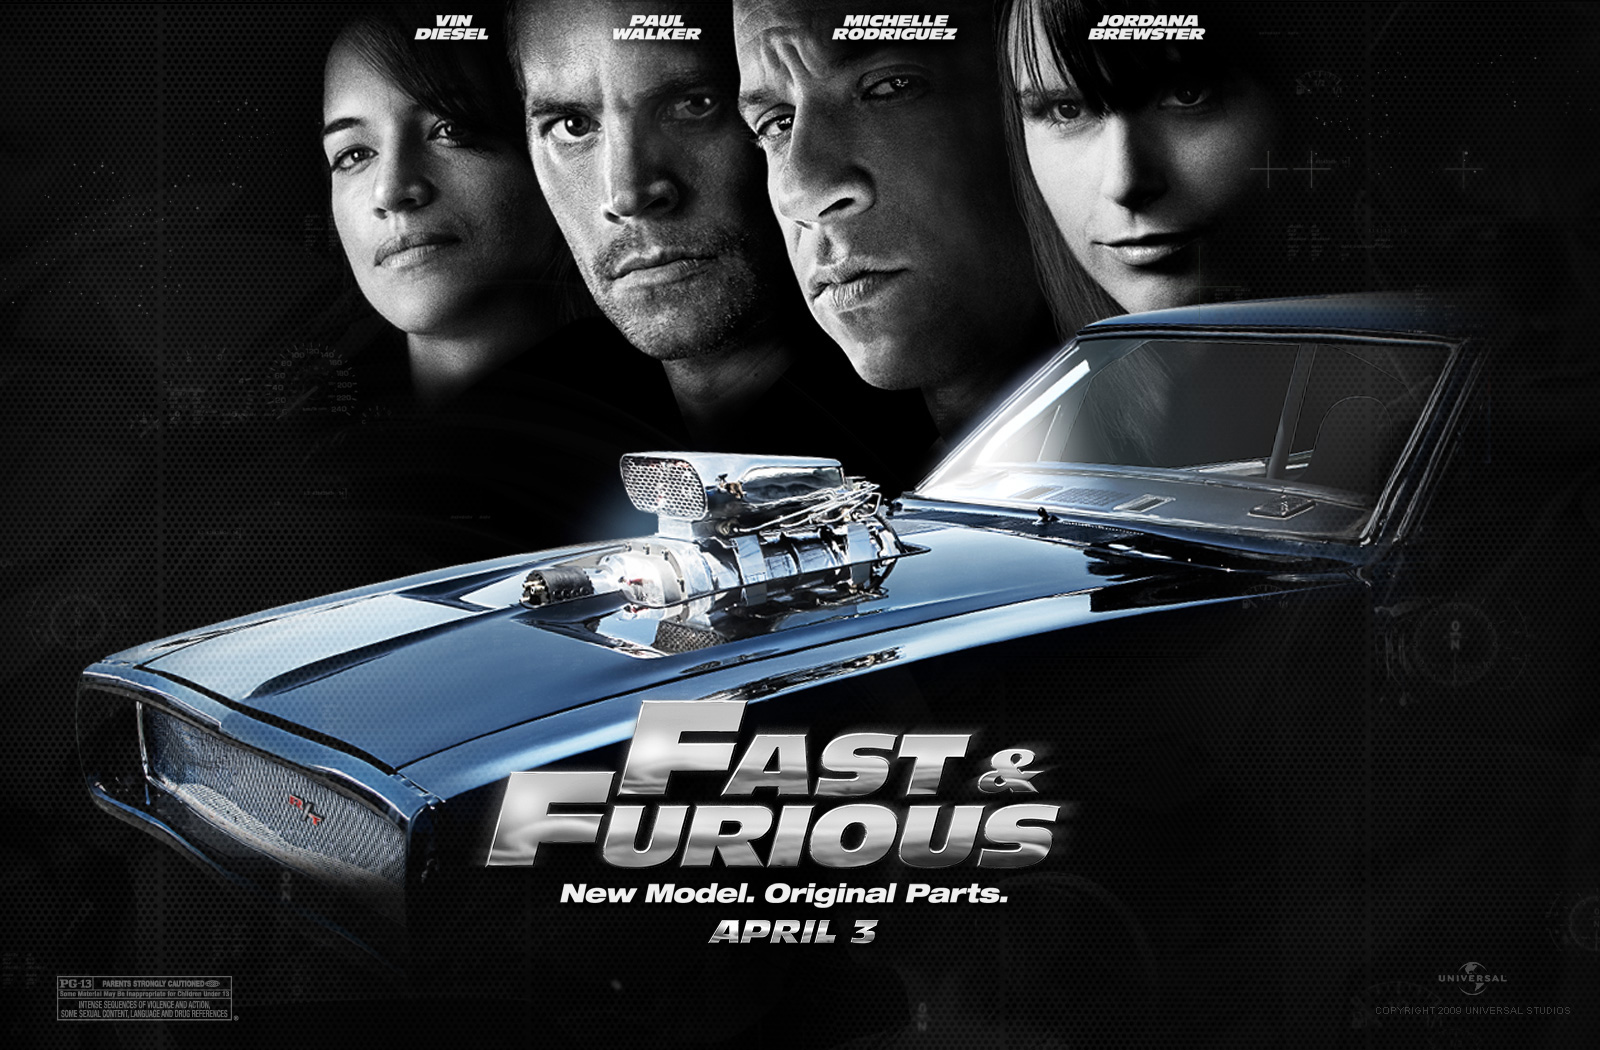 Vin Diesel in The Fast and the Furious 4 Wallpaper 1 800jpg 1600x1050